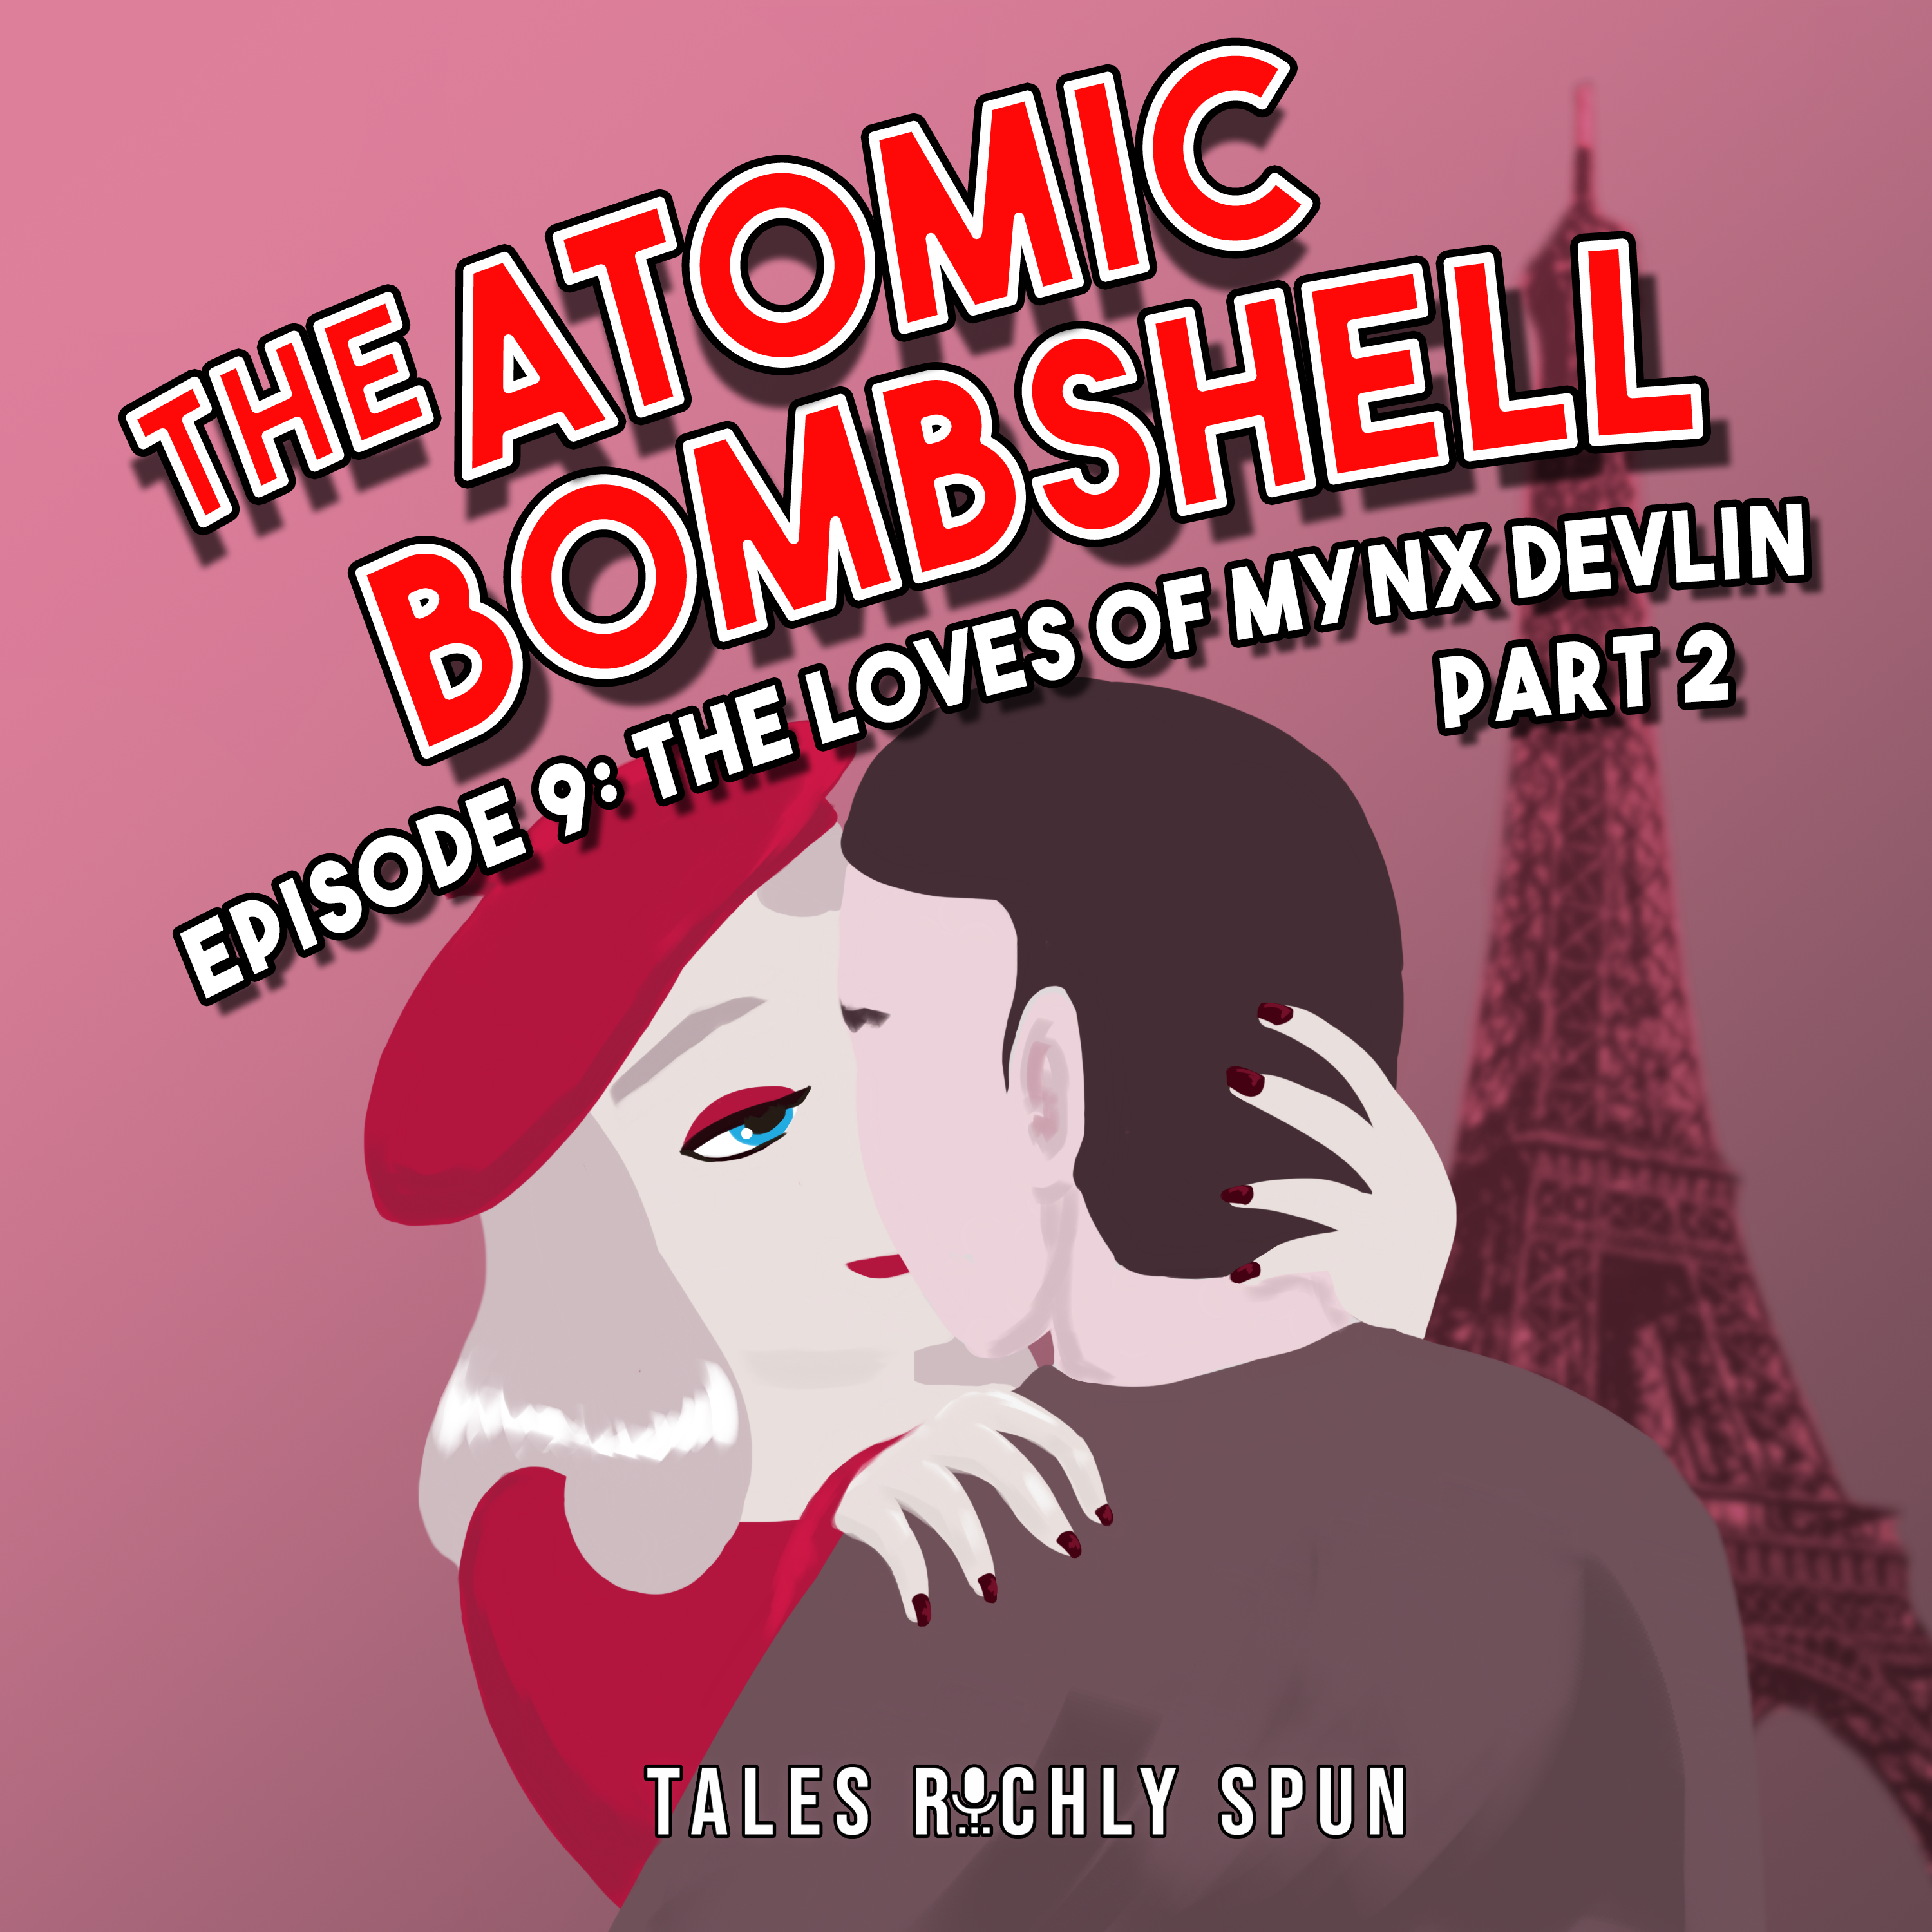 Atomic Bombshell: Episode 9, The Loves of Mynx Devlin, Part 2